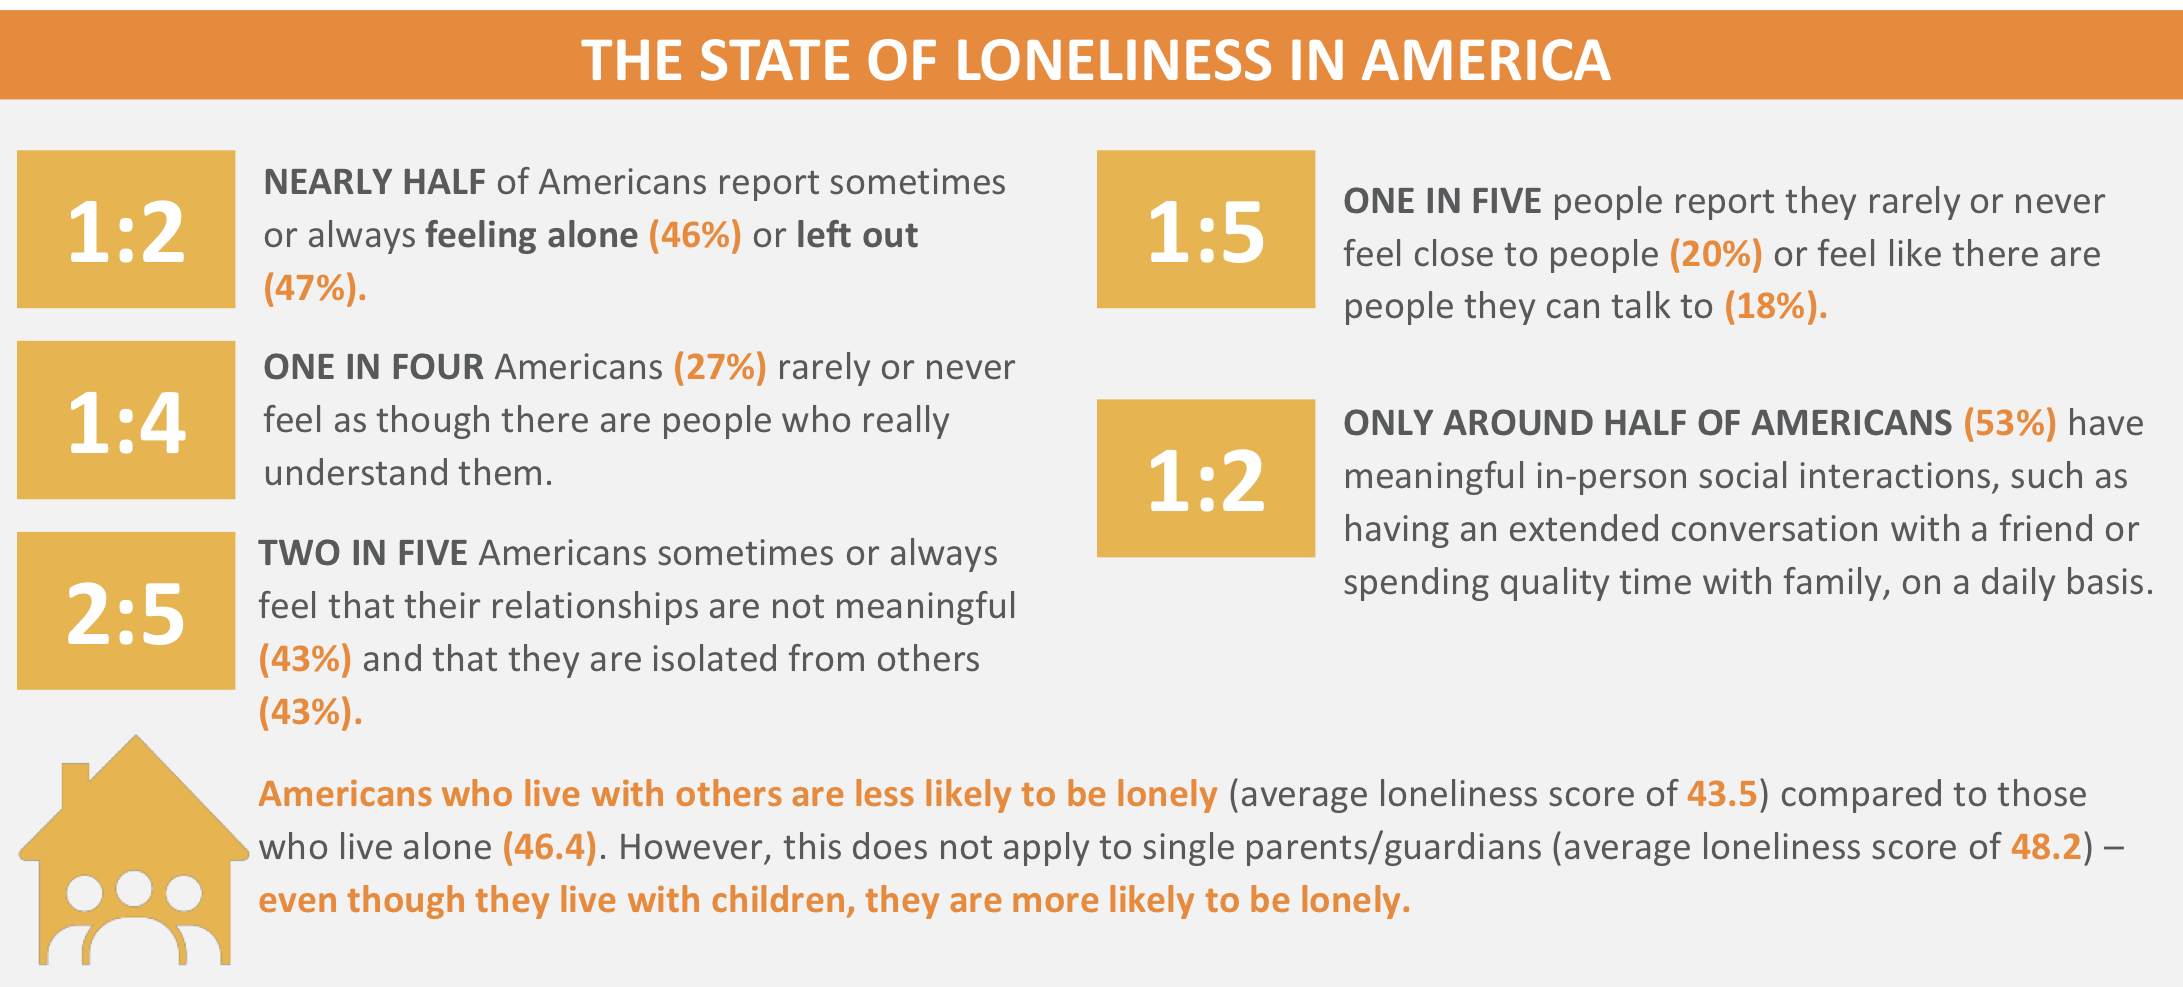 facts about the state of loneliness in America